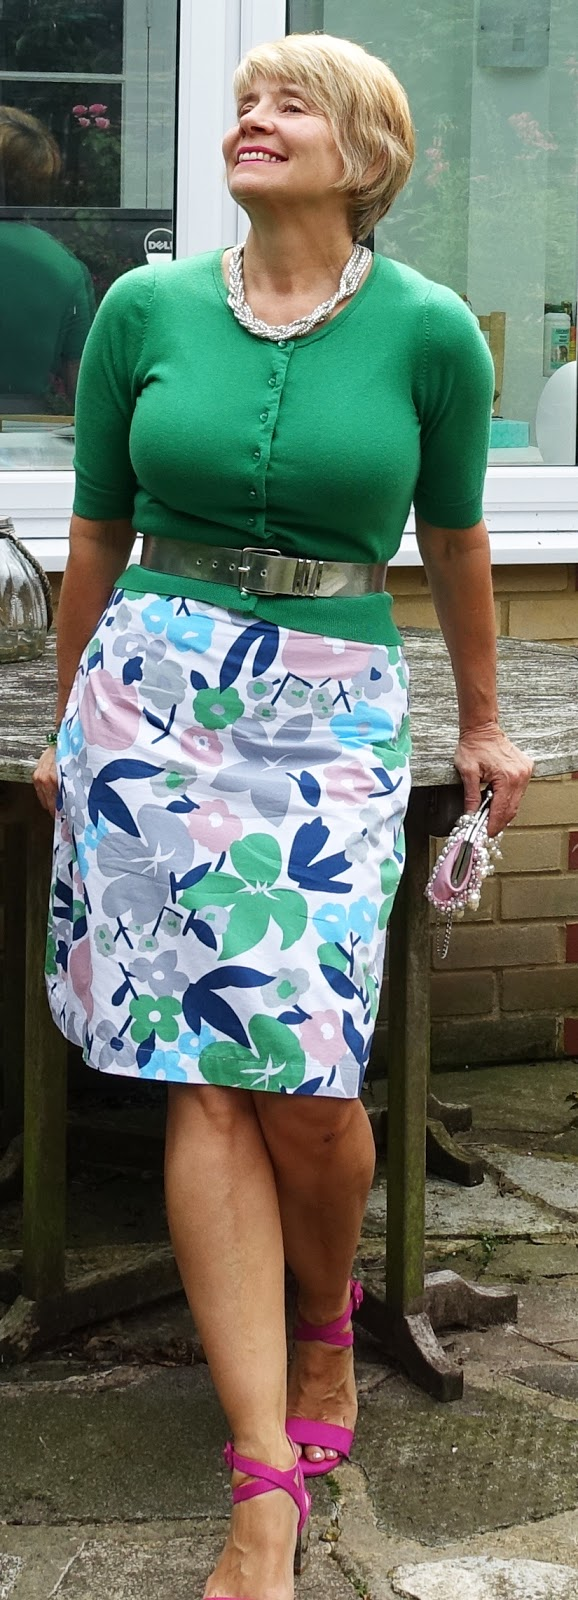 Is This Mutton? revisits Boden floral skirts and pairs another one with green and pink